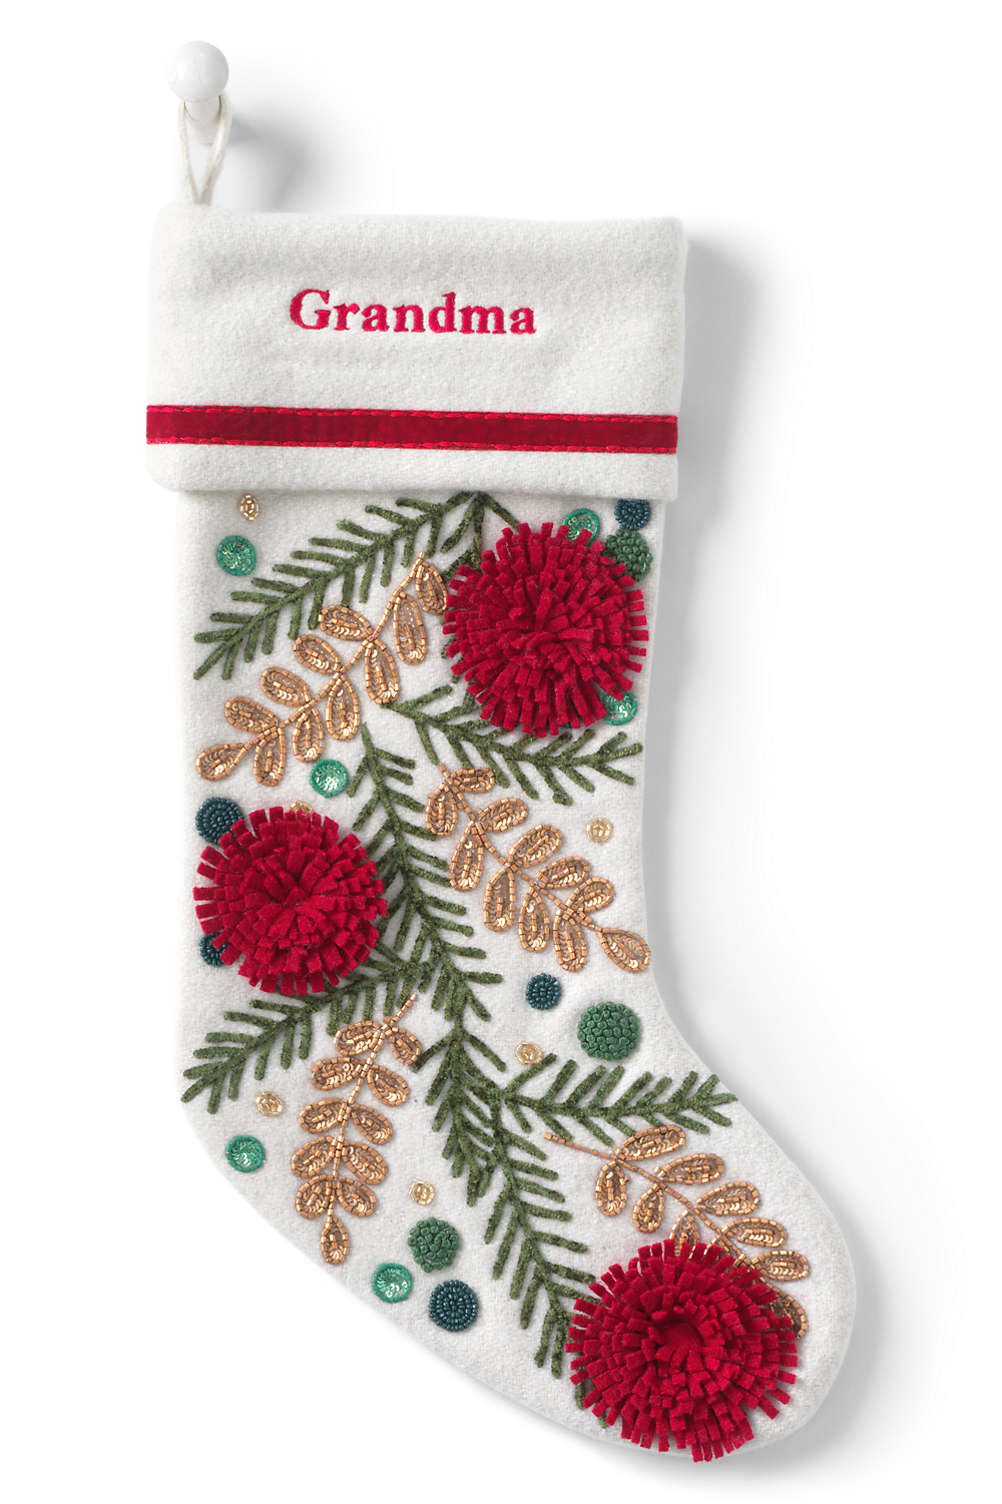 Lands End Christmas Stockings.Embellished Personalized Christmas Stocking